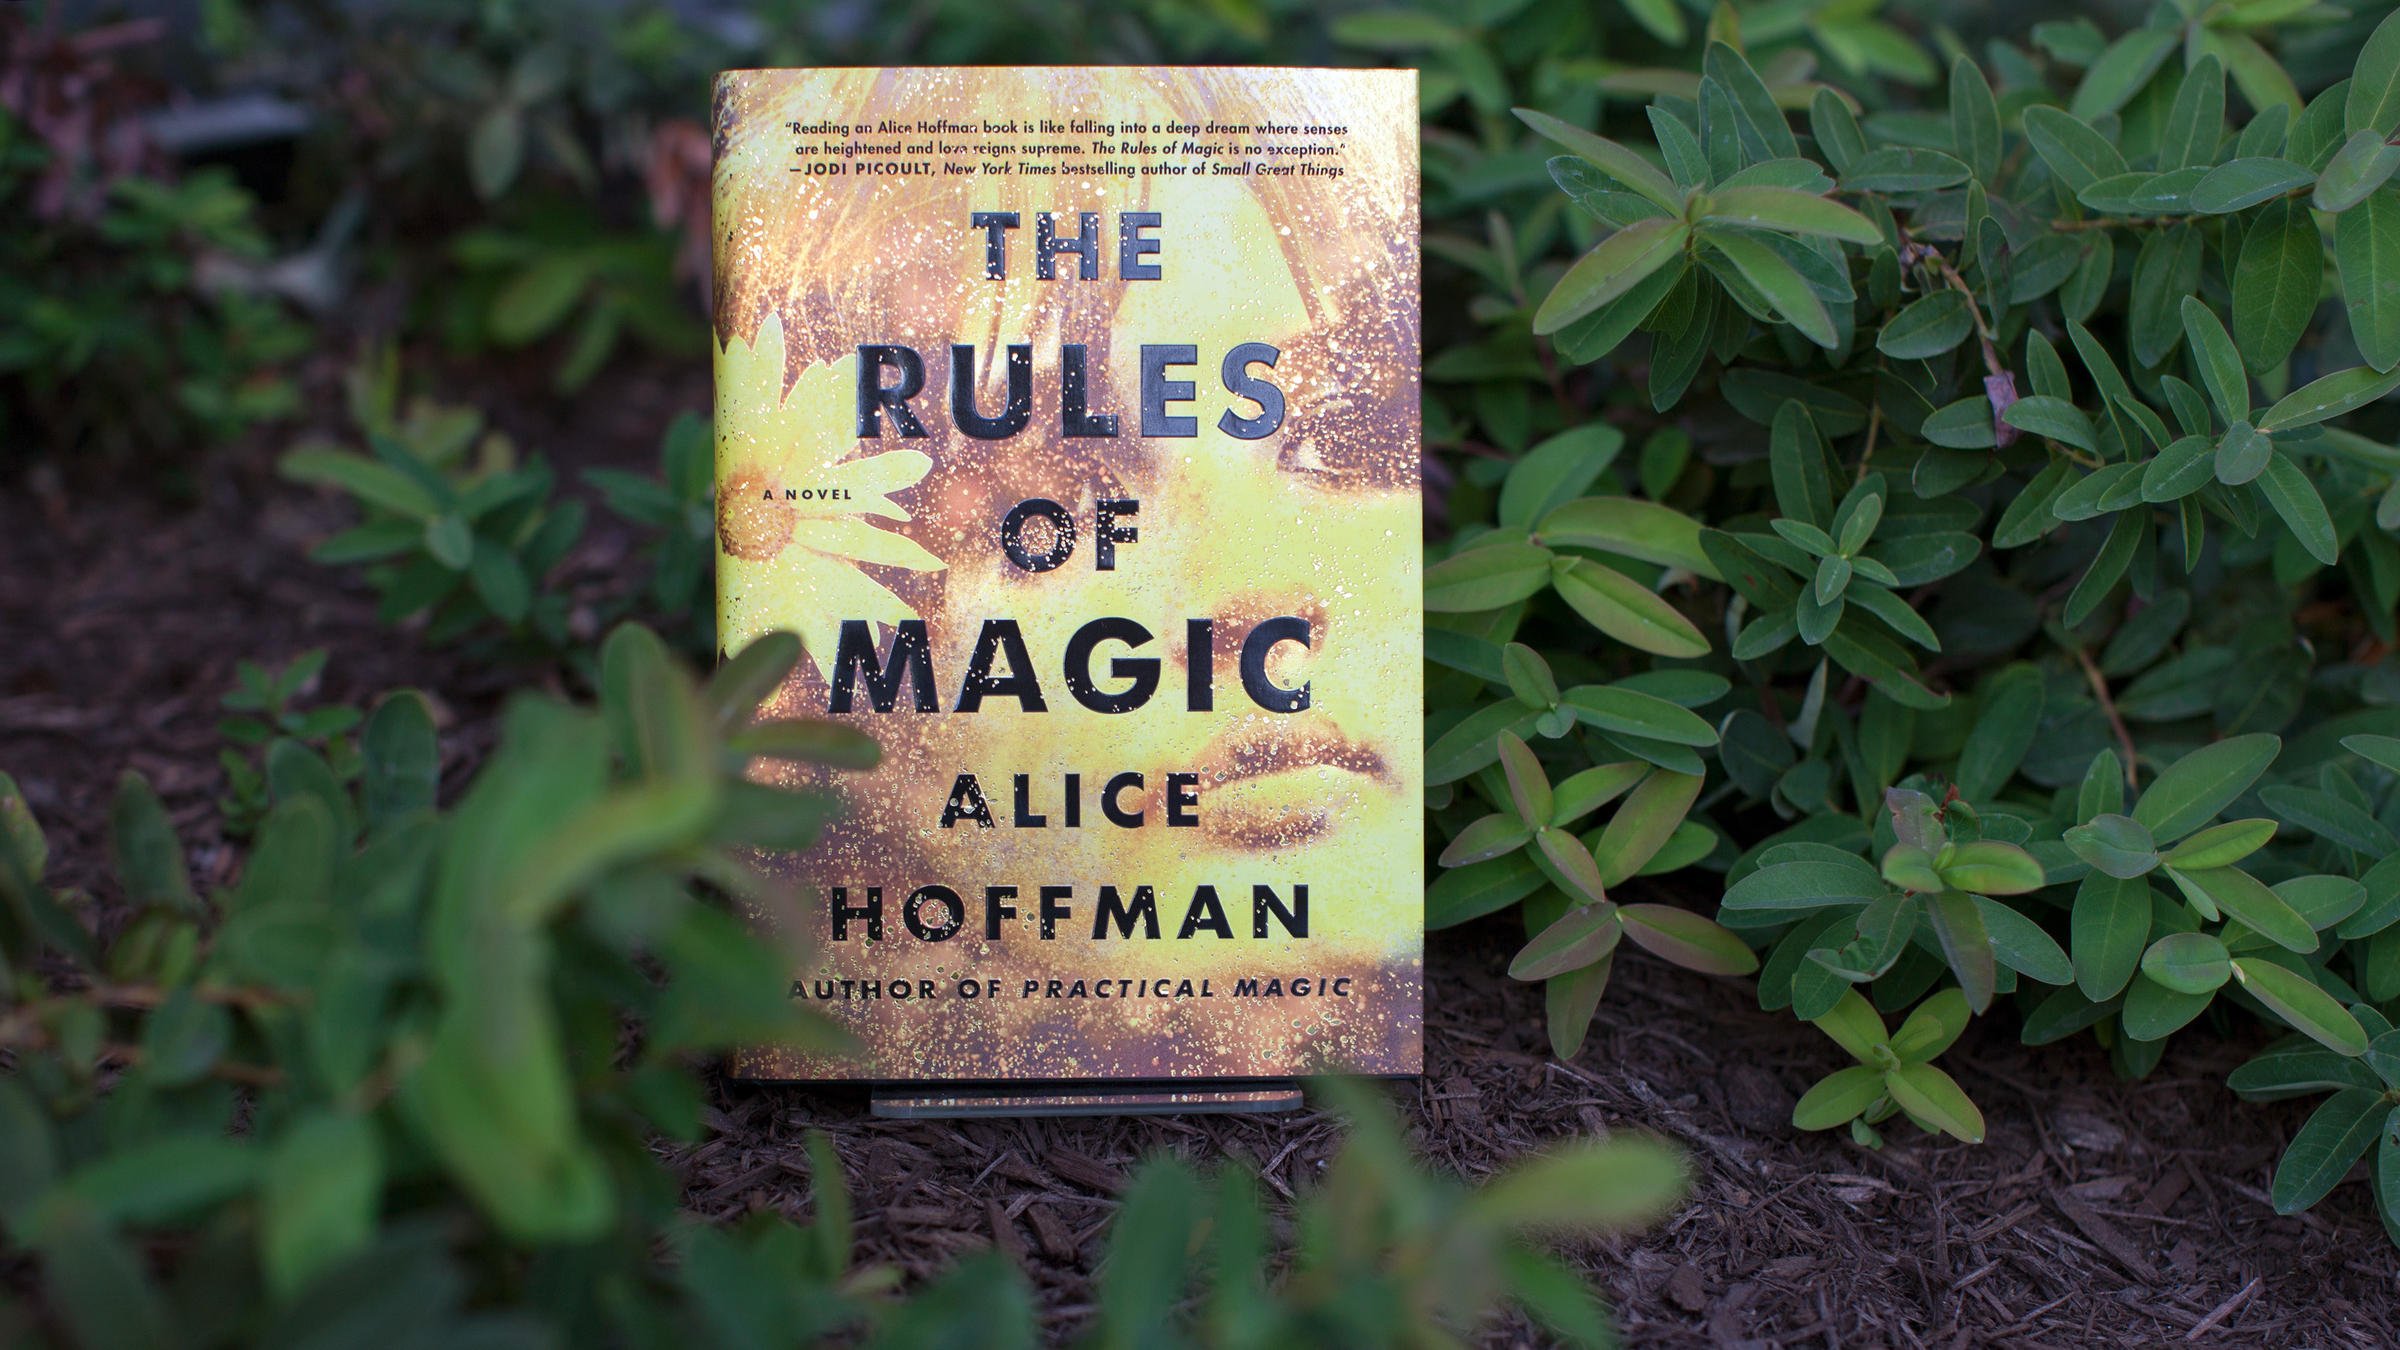 In 1960s New York, Witchy Women Learn 'The Rules Of Magic